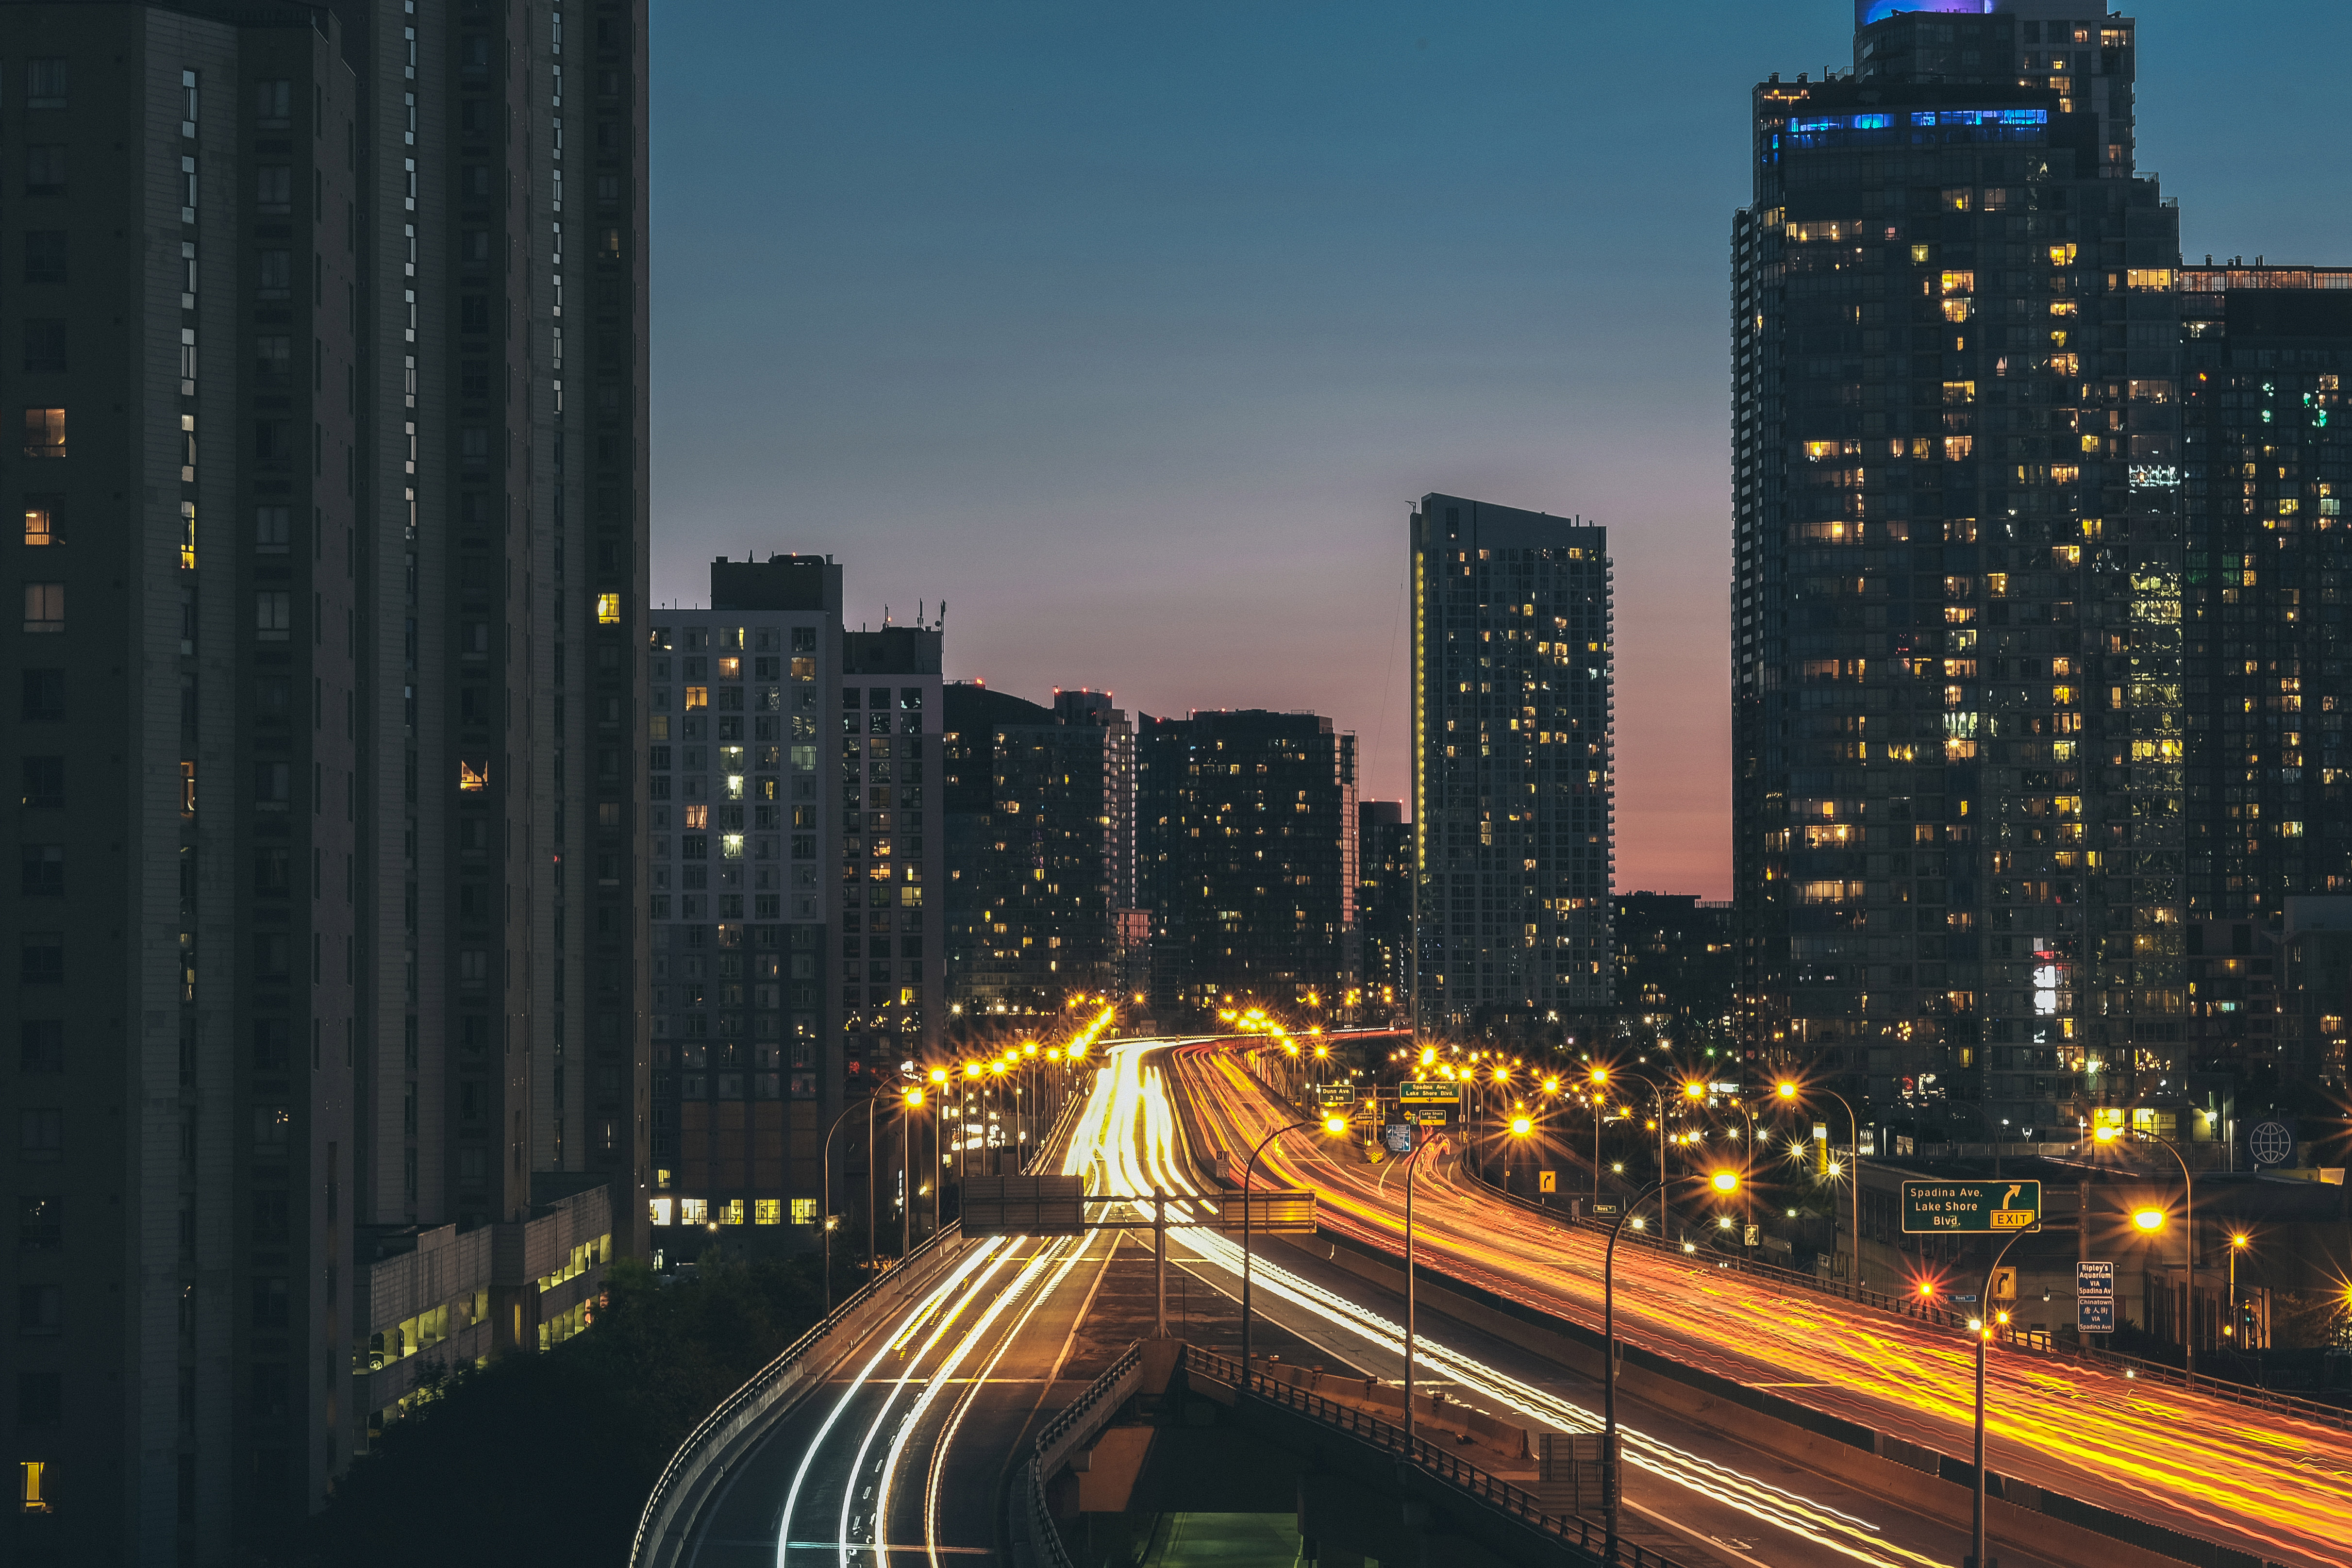 Moving city, buildings, light, light rays, cars, cars, speed, motion, lights, cityscape, skyline, buildings, architecture, towers, high rises, city, urban, night, evening, lights, road, streets, highway , cars, traffic, sky, dusk